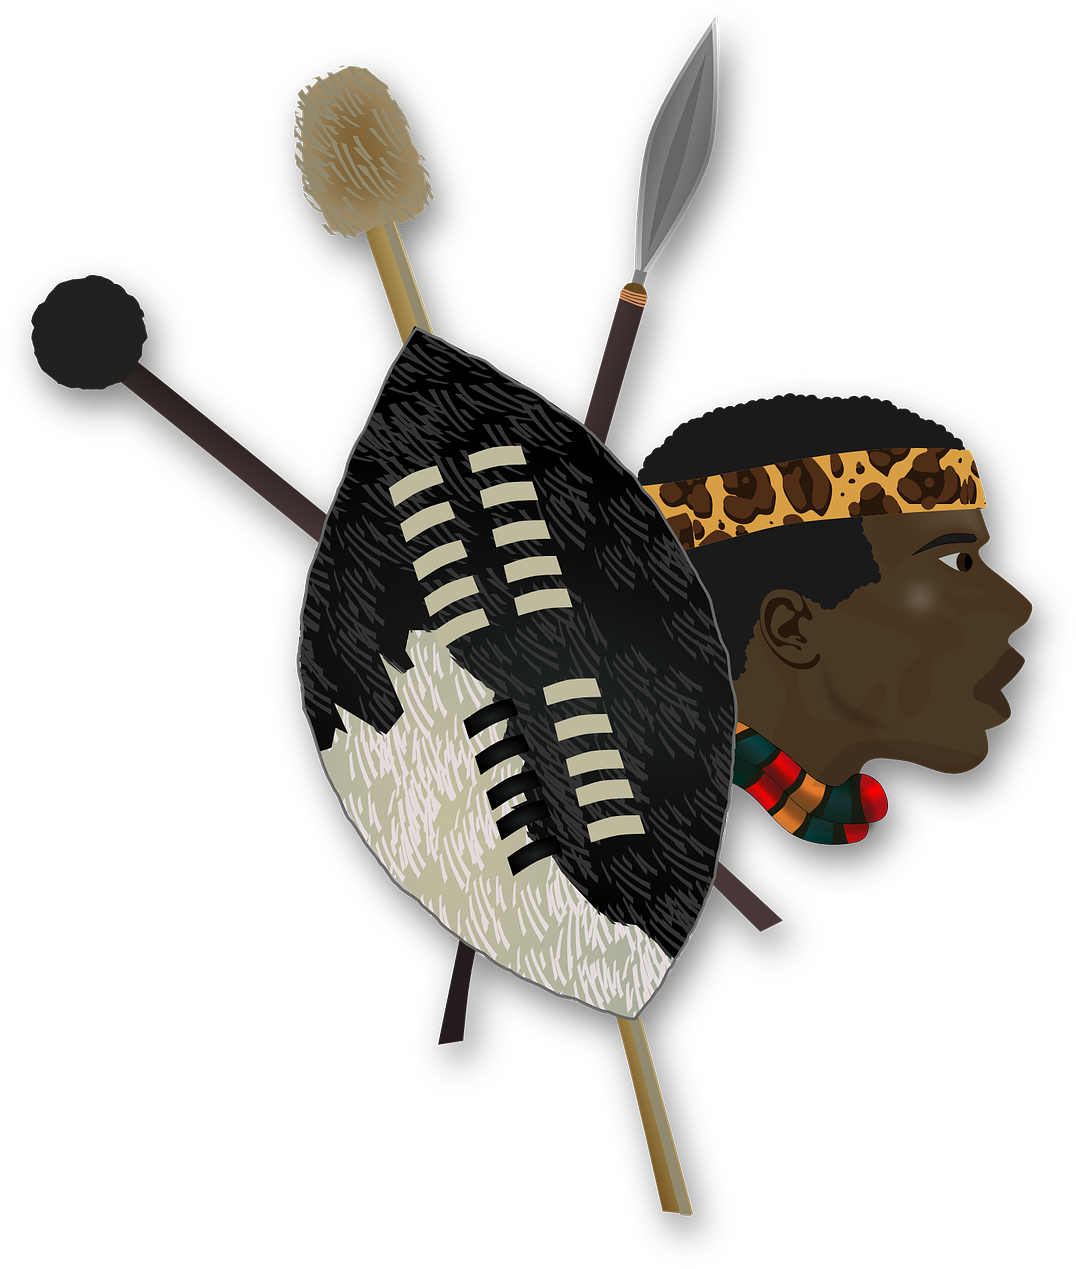 Folklore Shield Africa African Png Image.